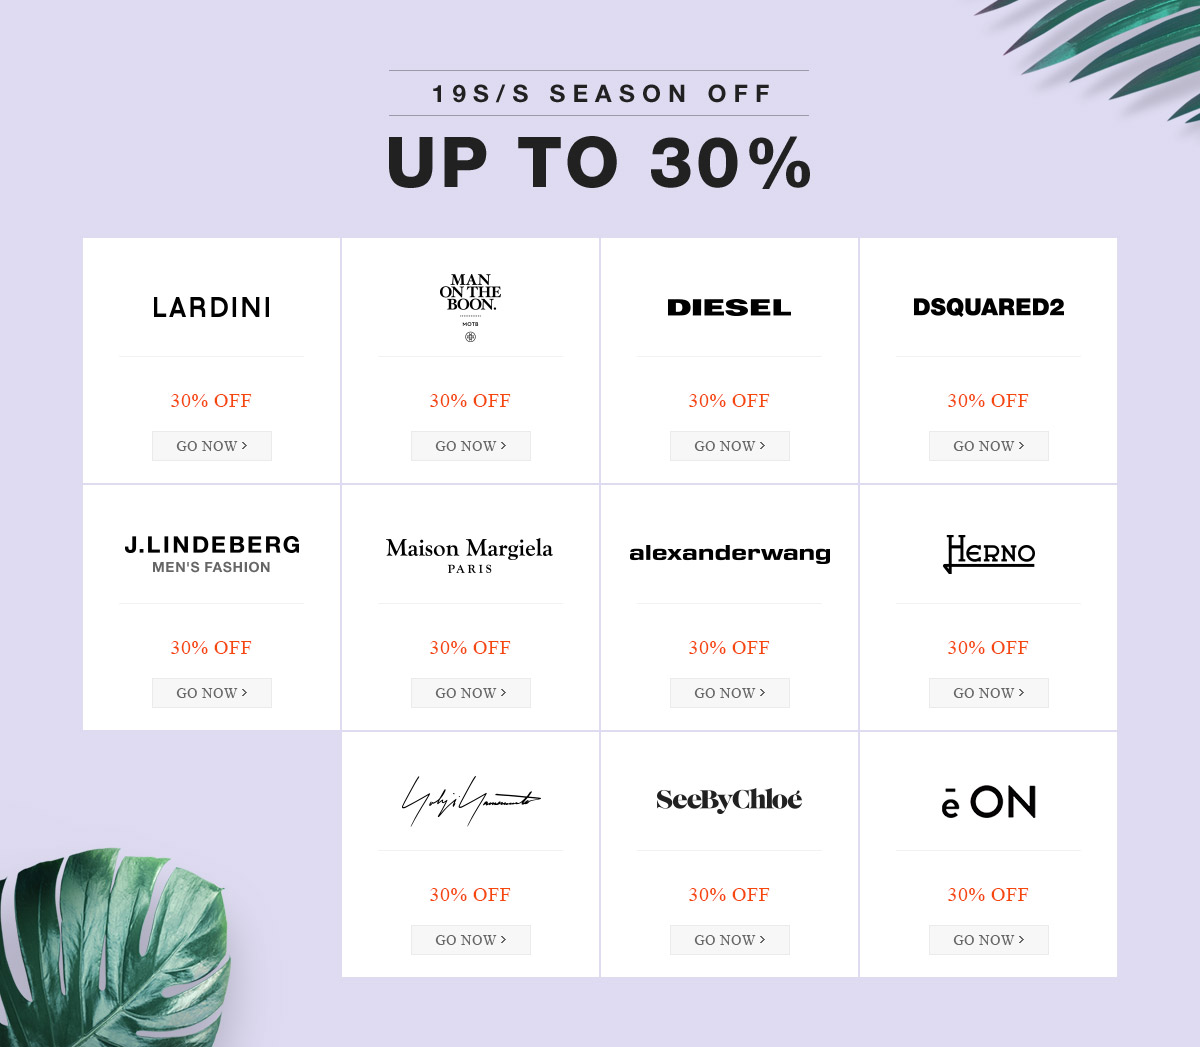 19S/S SEASON OFF off UP TO 30%